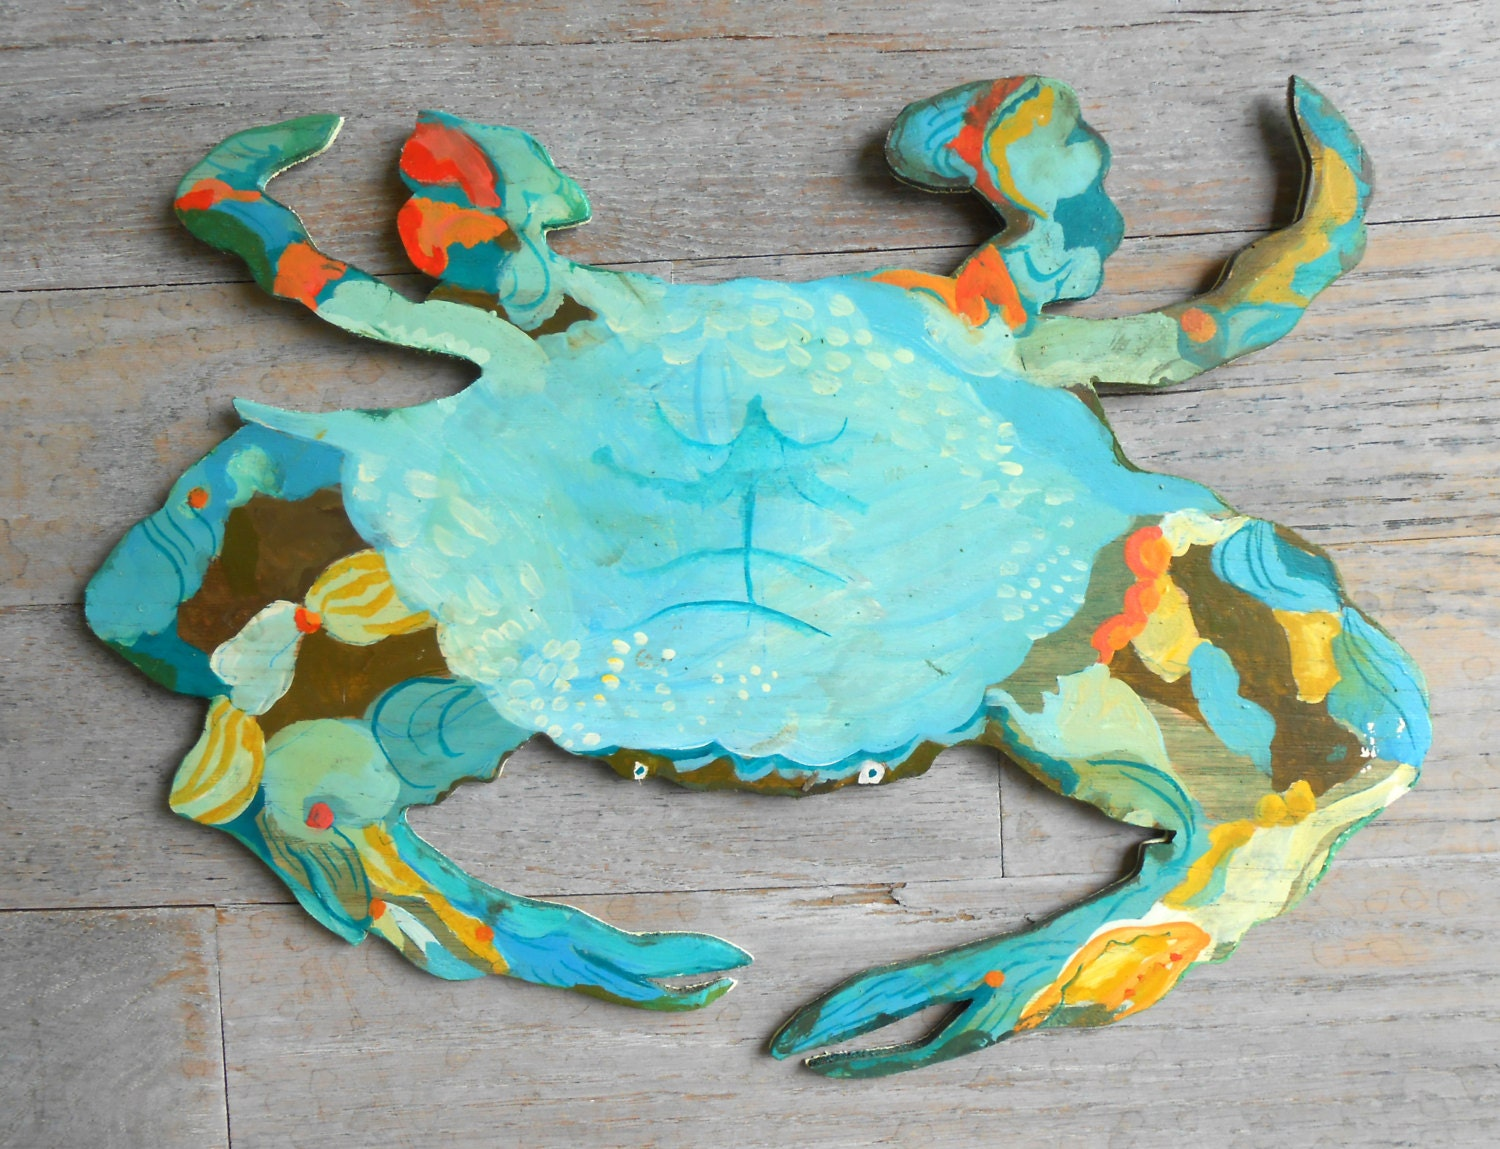 Blue crab blue crab wood sign by kimberly hodges lake house sign blue crab blue crab wood sign by kimberly hodges lake house sign wood wall art large lake house decor kitchen signage wood crab sign amipublicfo Images